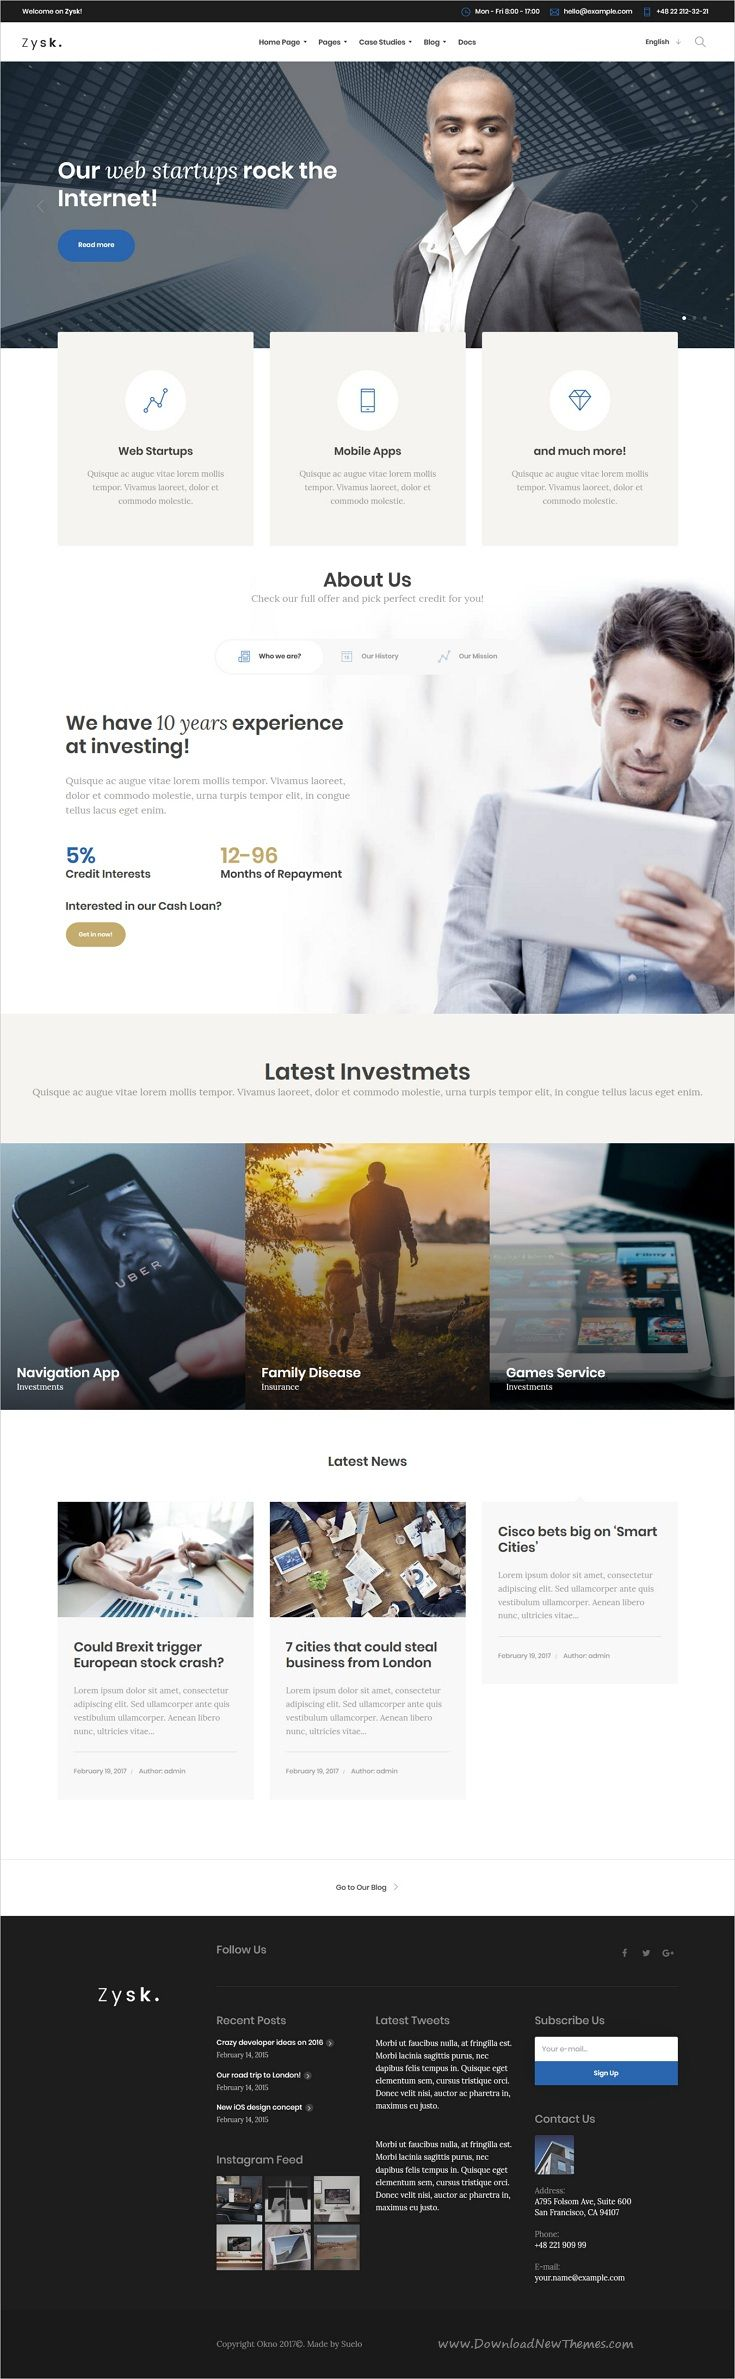 Zysk is smooth and stylish 7in1 responsive #WordPress theme for #investment, #business, finance and consulting services professional website download now..